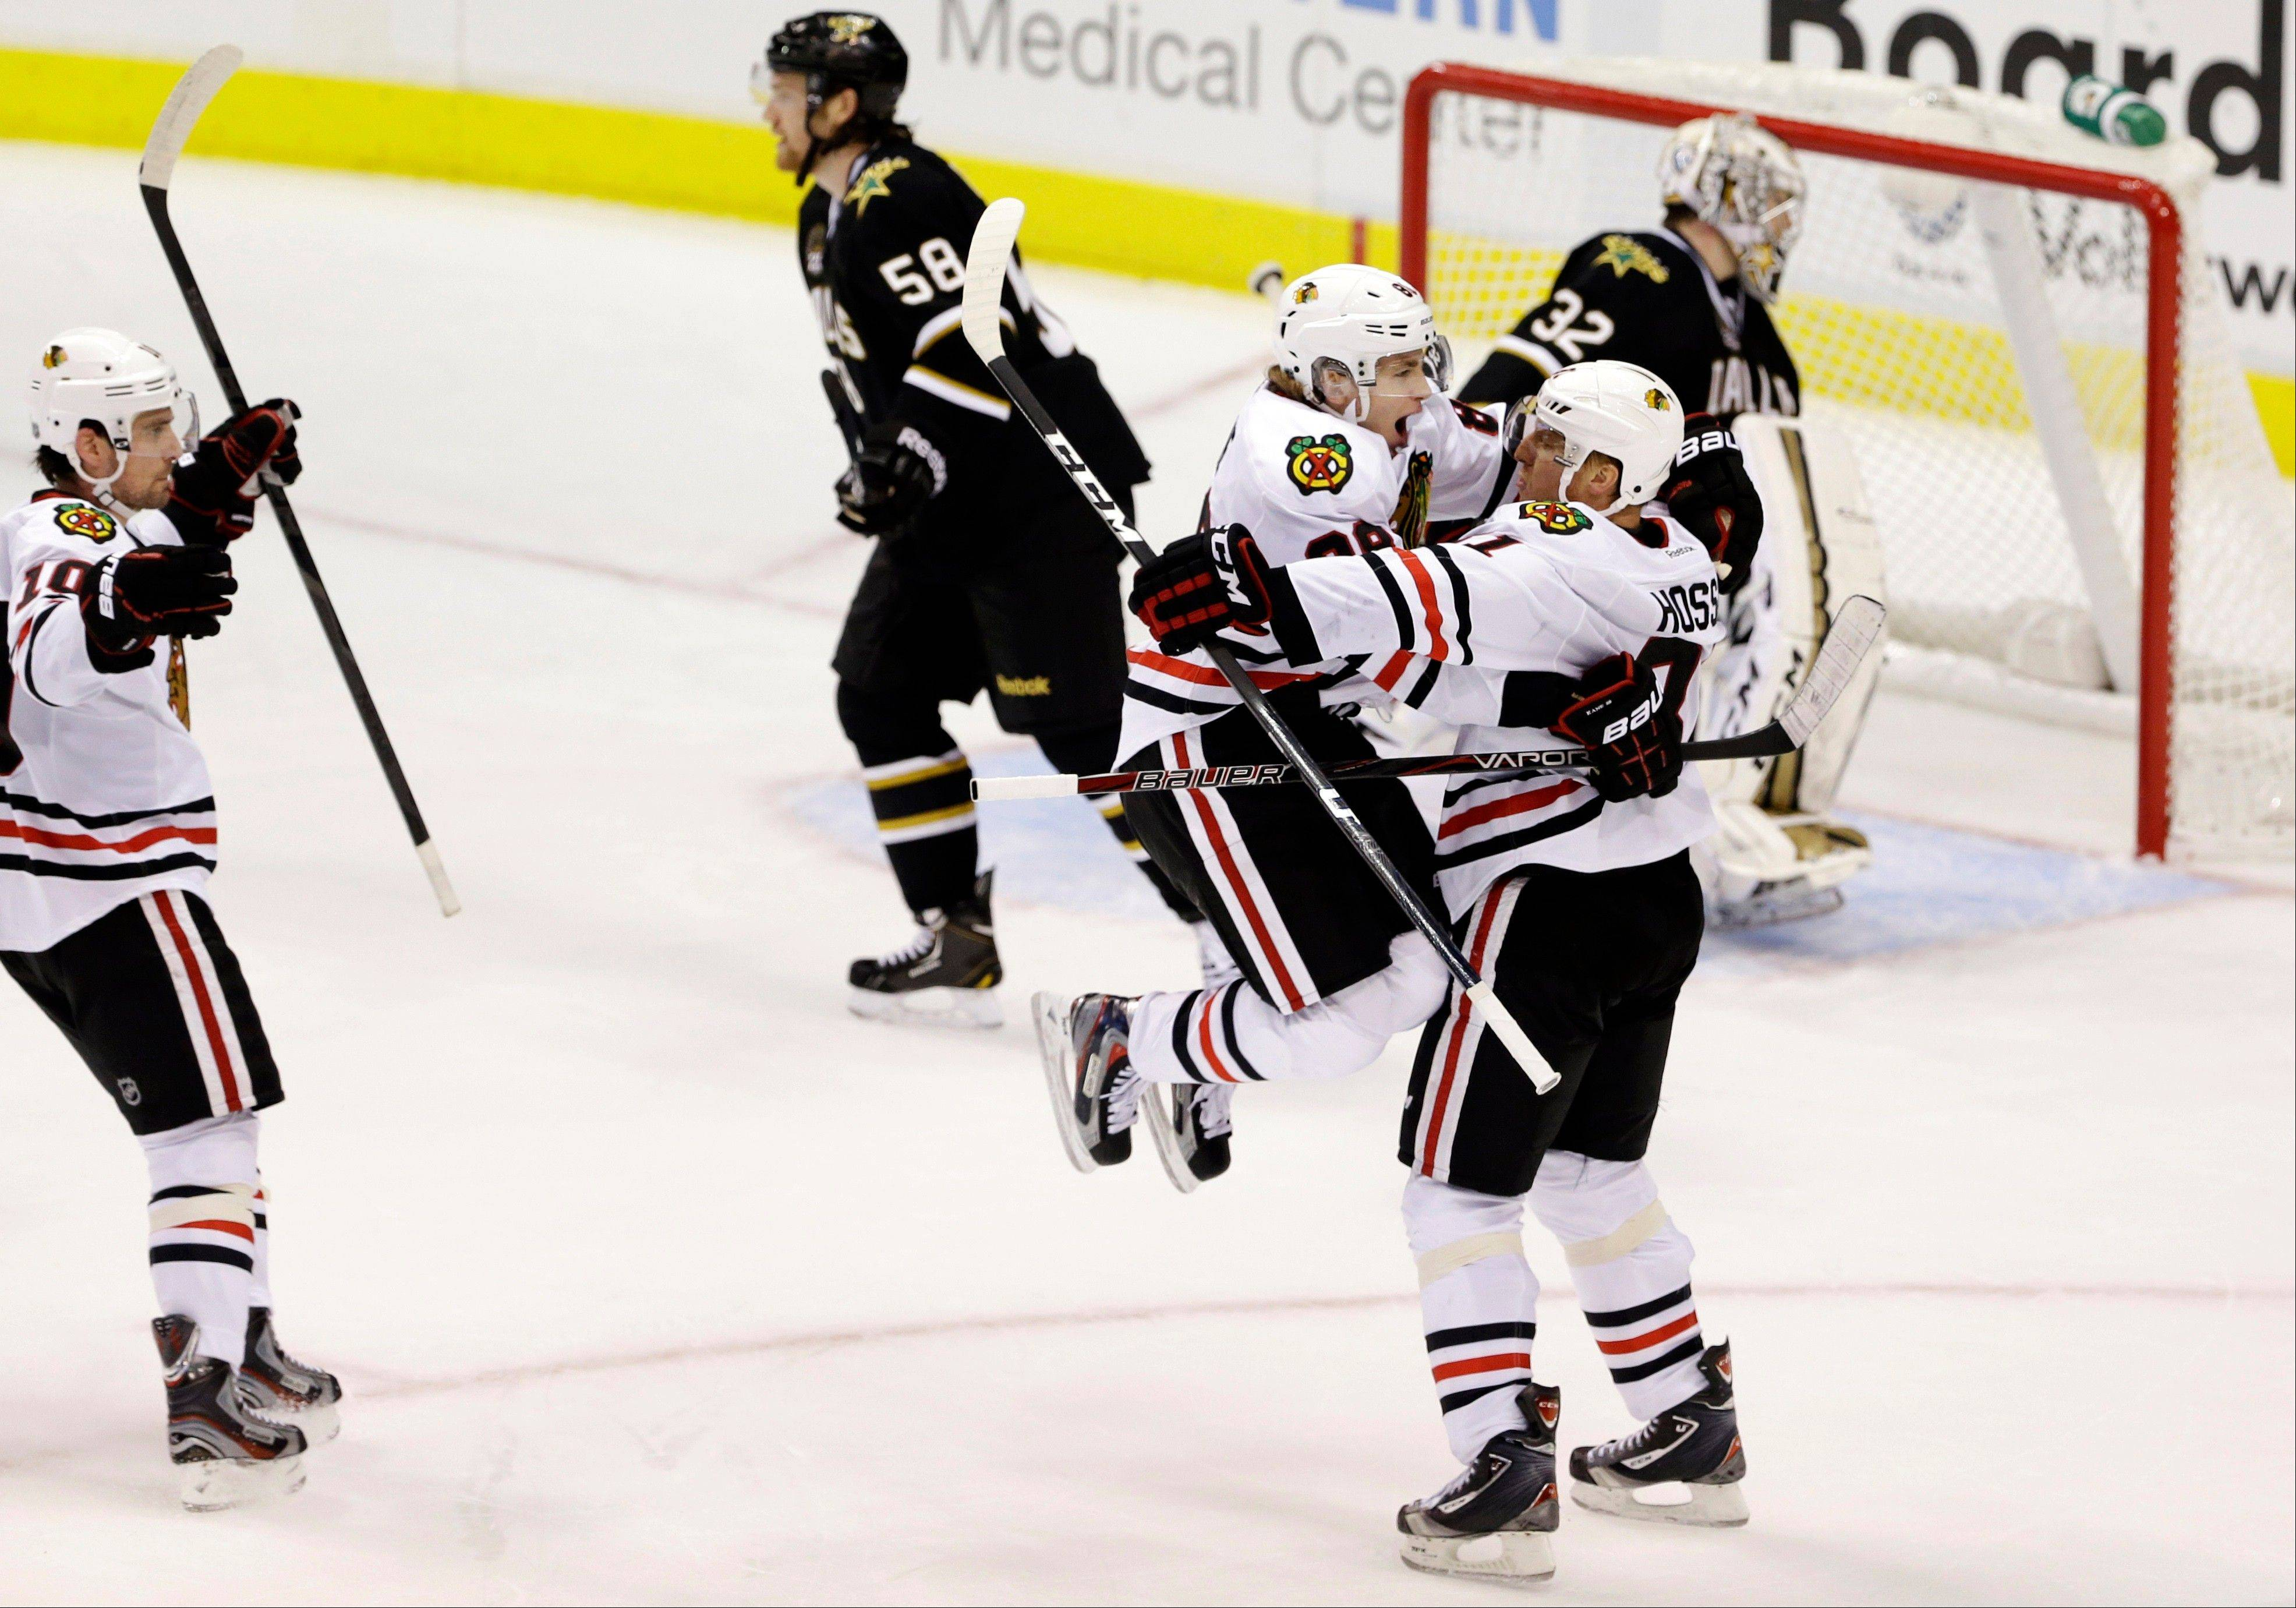 Patrick Sharp, left, watches as Patrick Kane, center left, and Marian Hossa (81), celebrate Hossa's overtime goal against Dallas Stars goalie Kari Lehtonen on Thursday night.